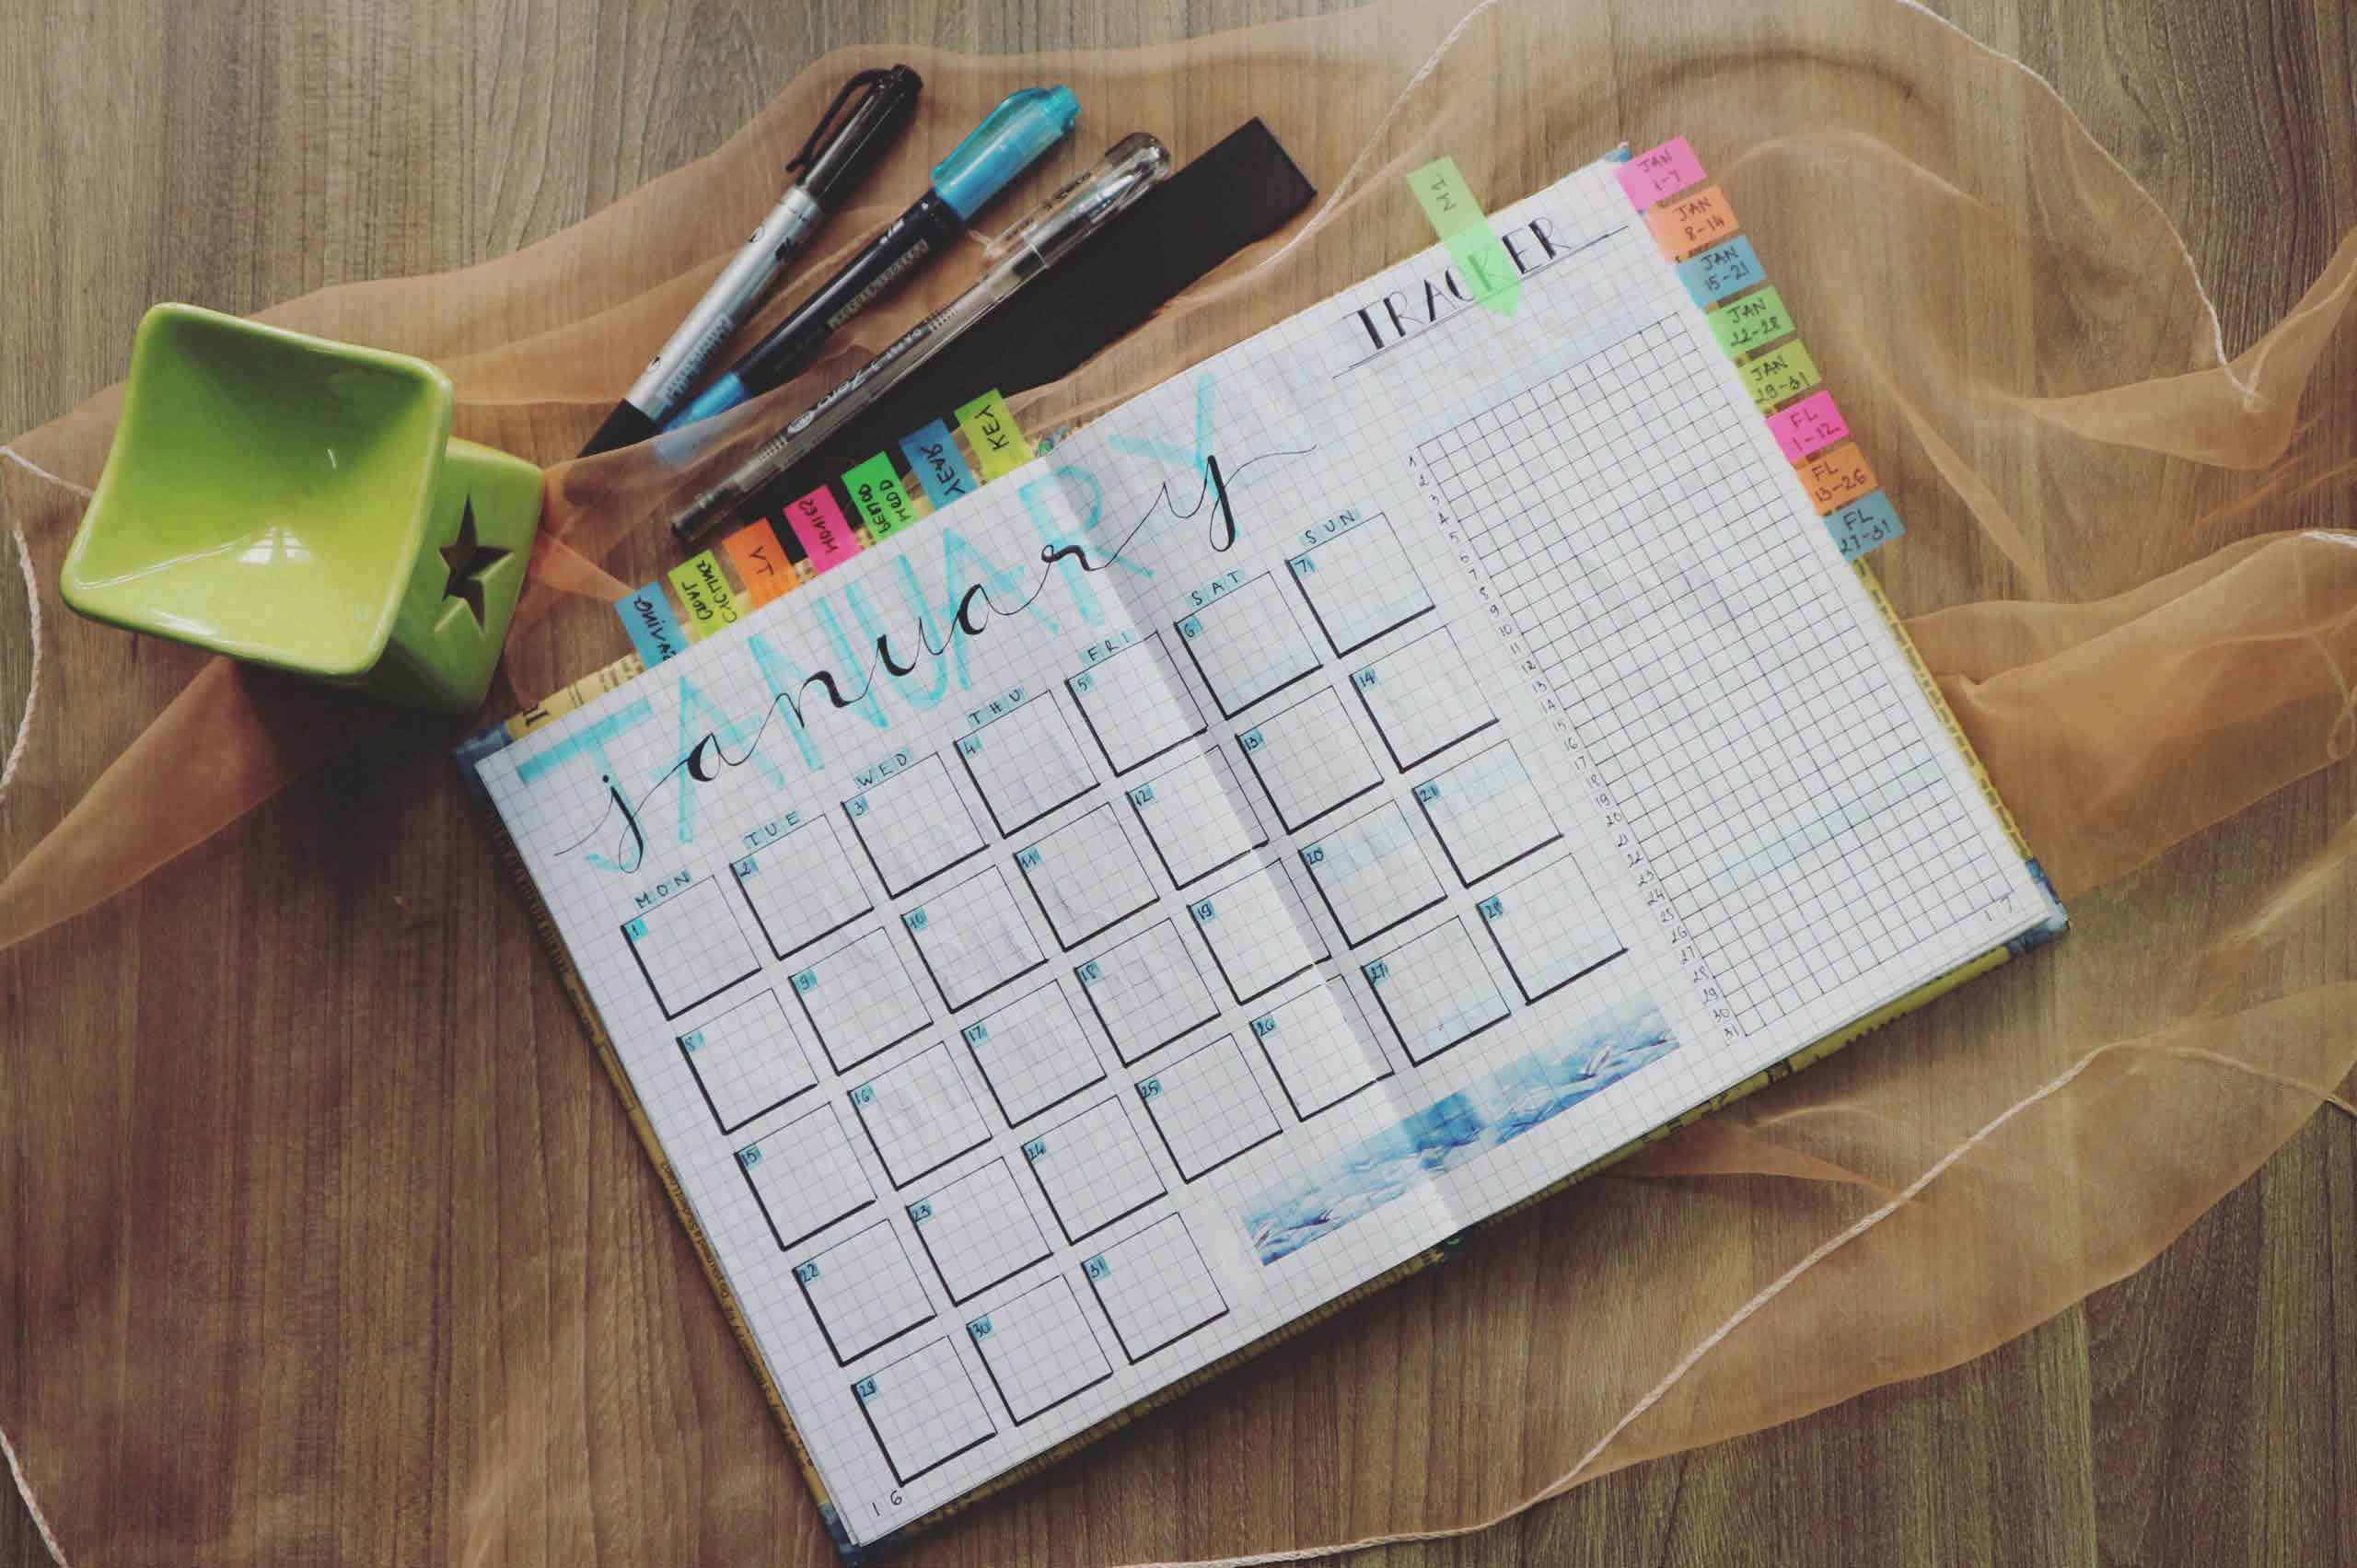 Mini Schedule planner for task & time management